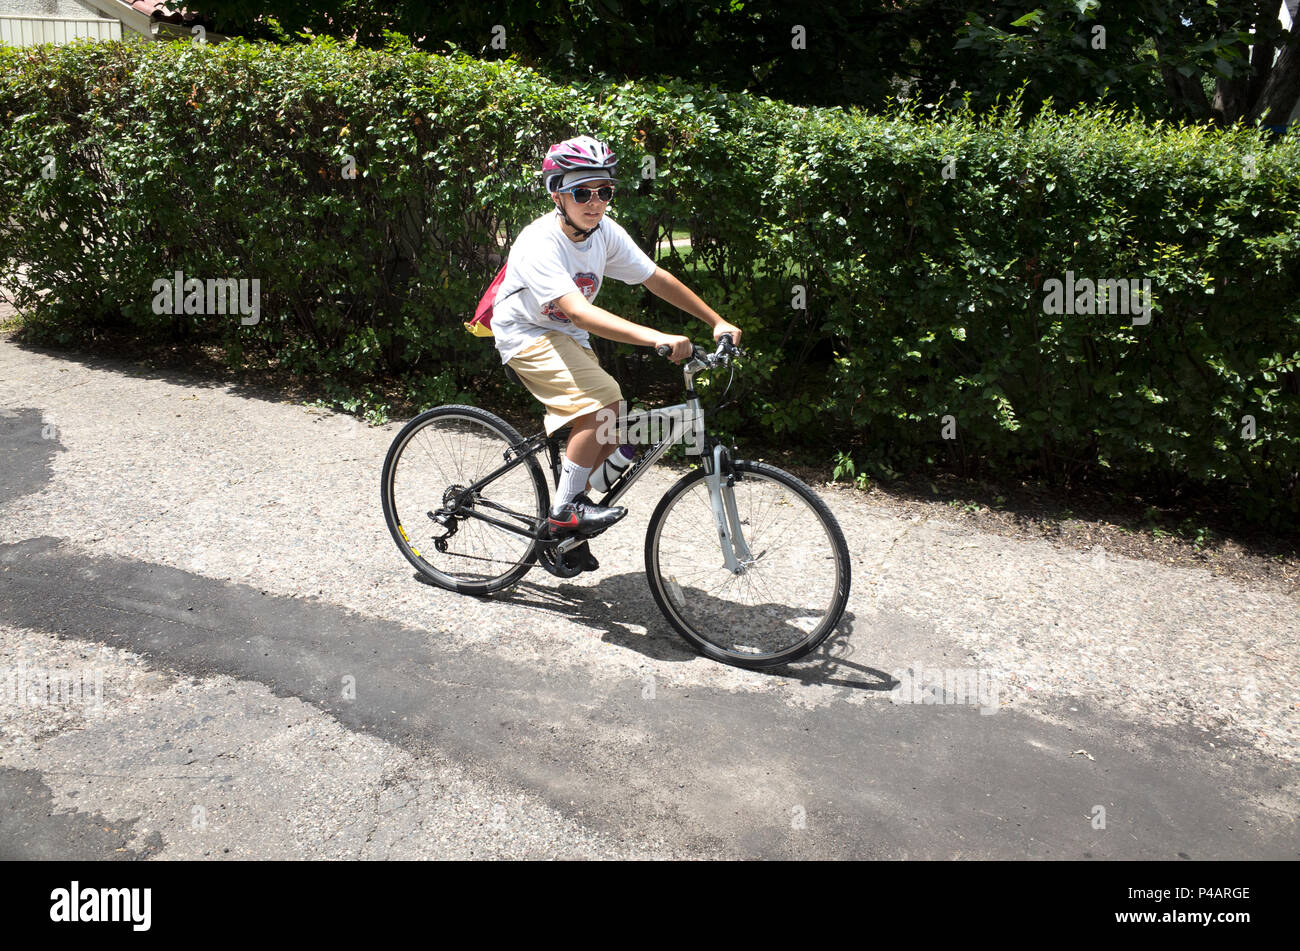 Cool looking preteen age 12 tooling down the alley wearing sun glasses and helmet waiting to start a good bicycle trip. St Paul Minnesota MN USA - Stock Image